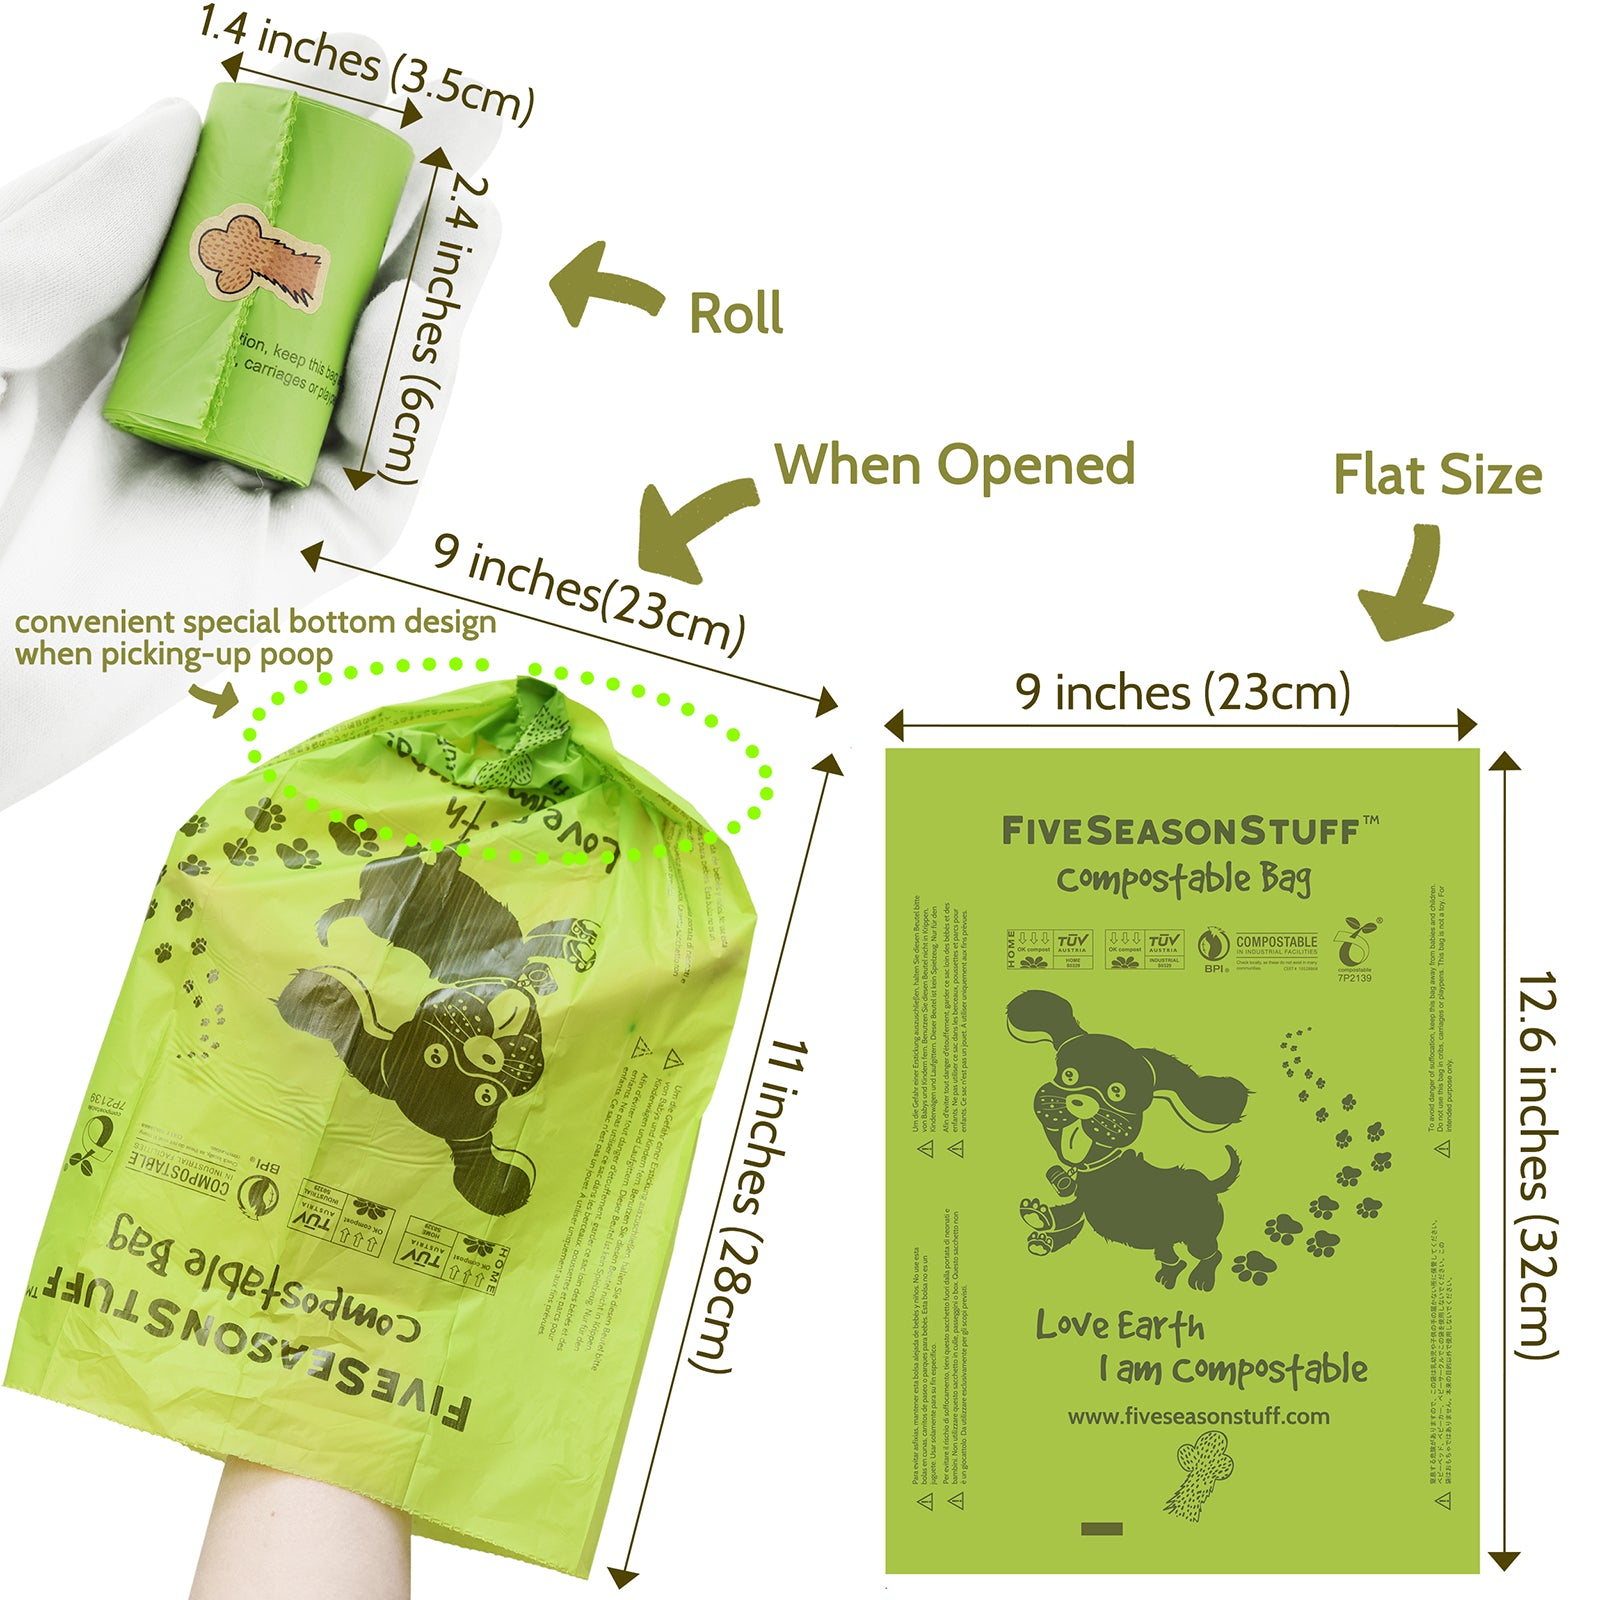 300 Bags and Lease Holder 100% Biodegradable & Compostable Leak Proof Dog Poop Bag (Lavender-Scented)